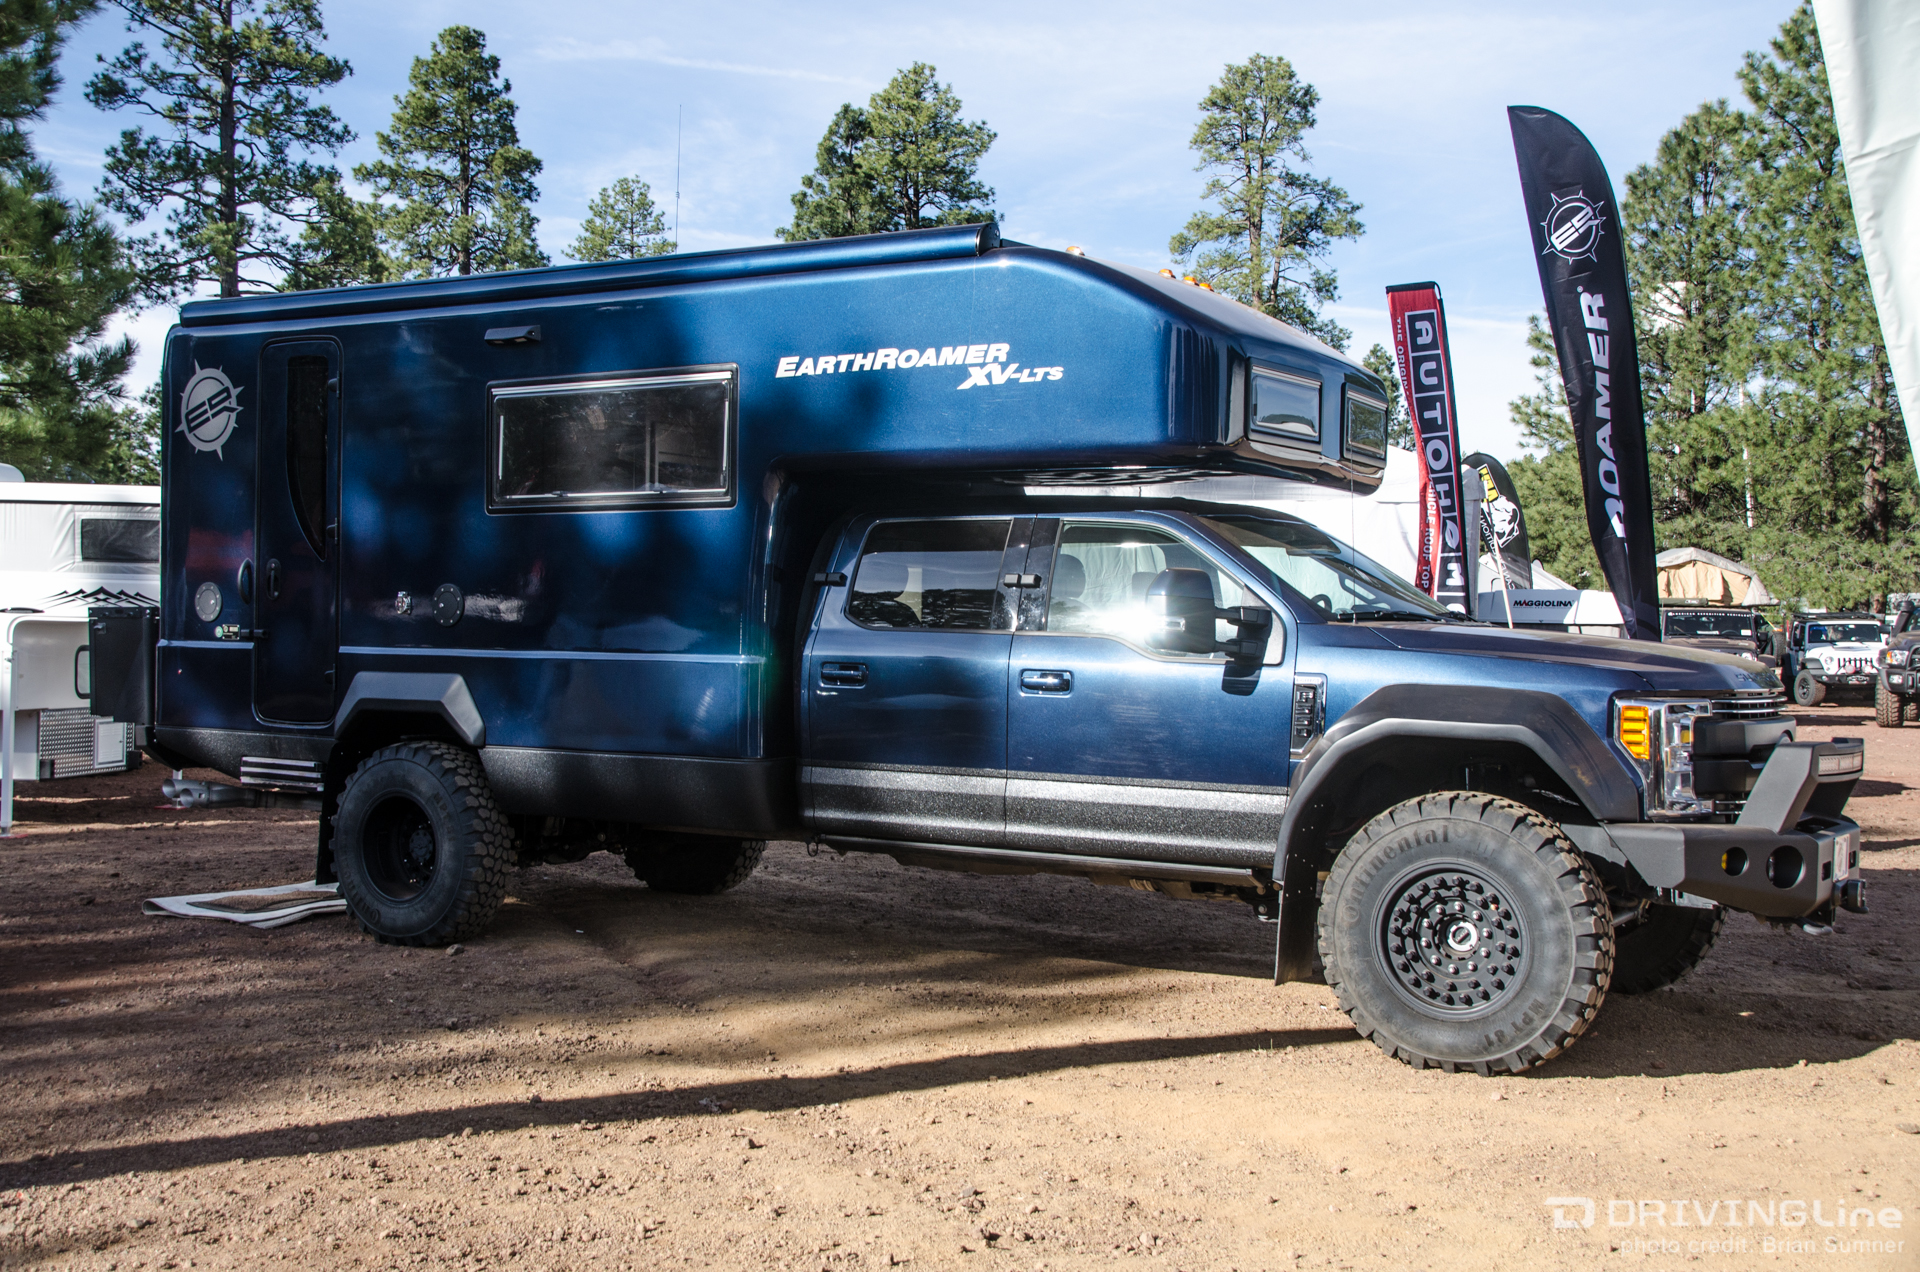 Ford Expedition Diesel >> 10 Rigs From Overland Expo That Will Make You Want to Sell Your House | DrivingLine